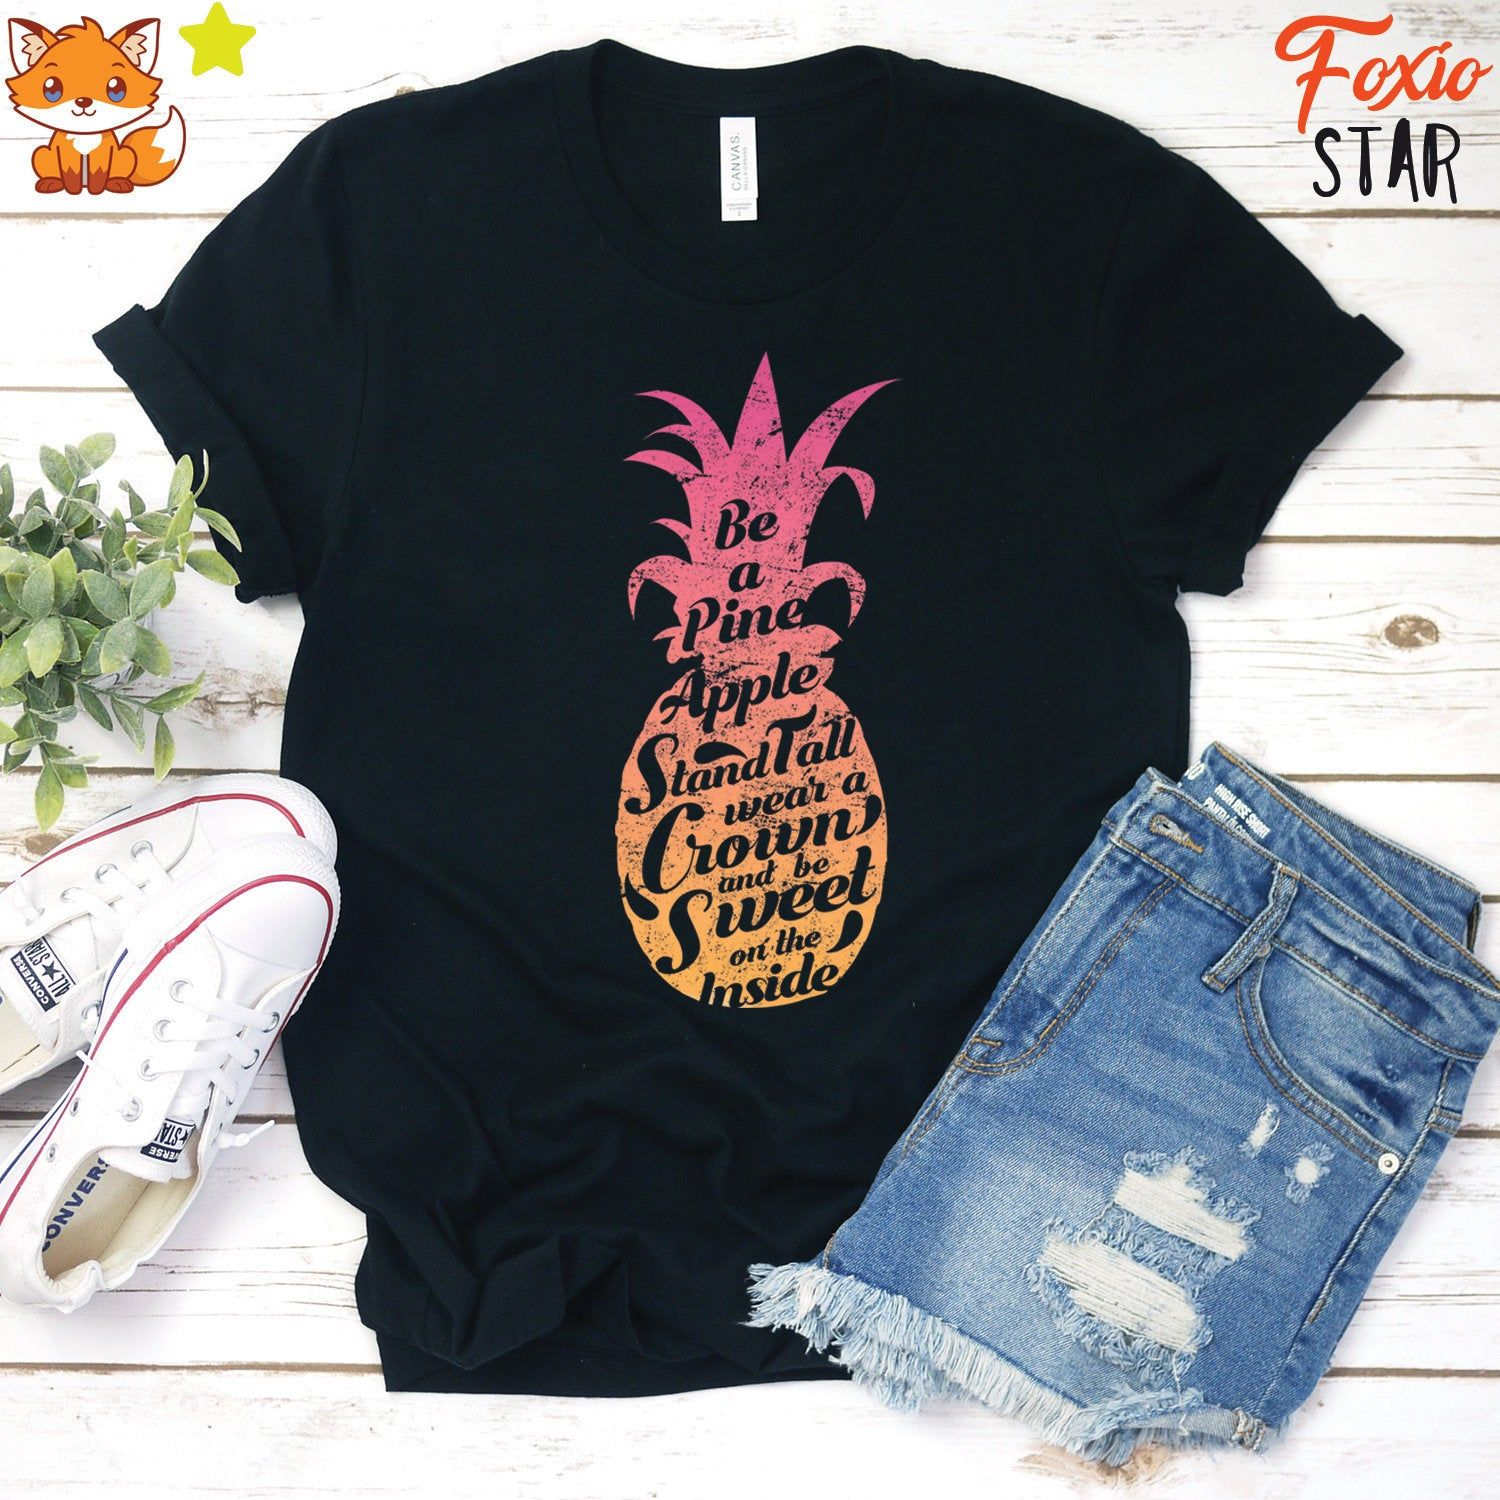 Comical Shirt Mens Stand Tall Wear Crown Sweet On The Inside Pineapple Hoodie